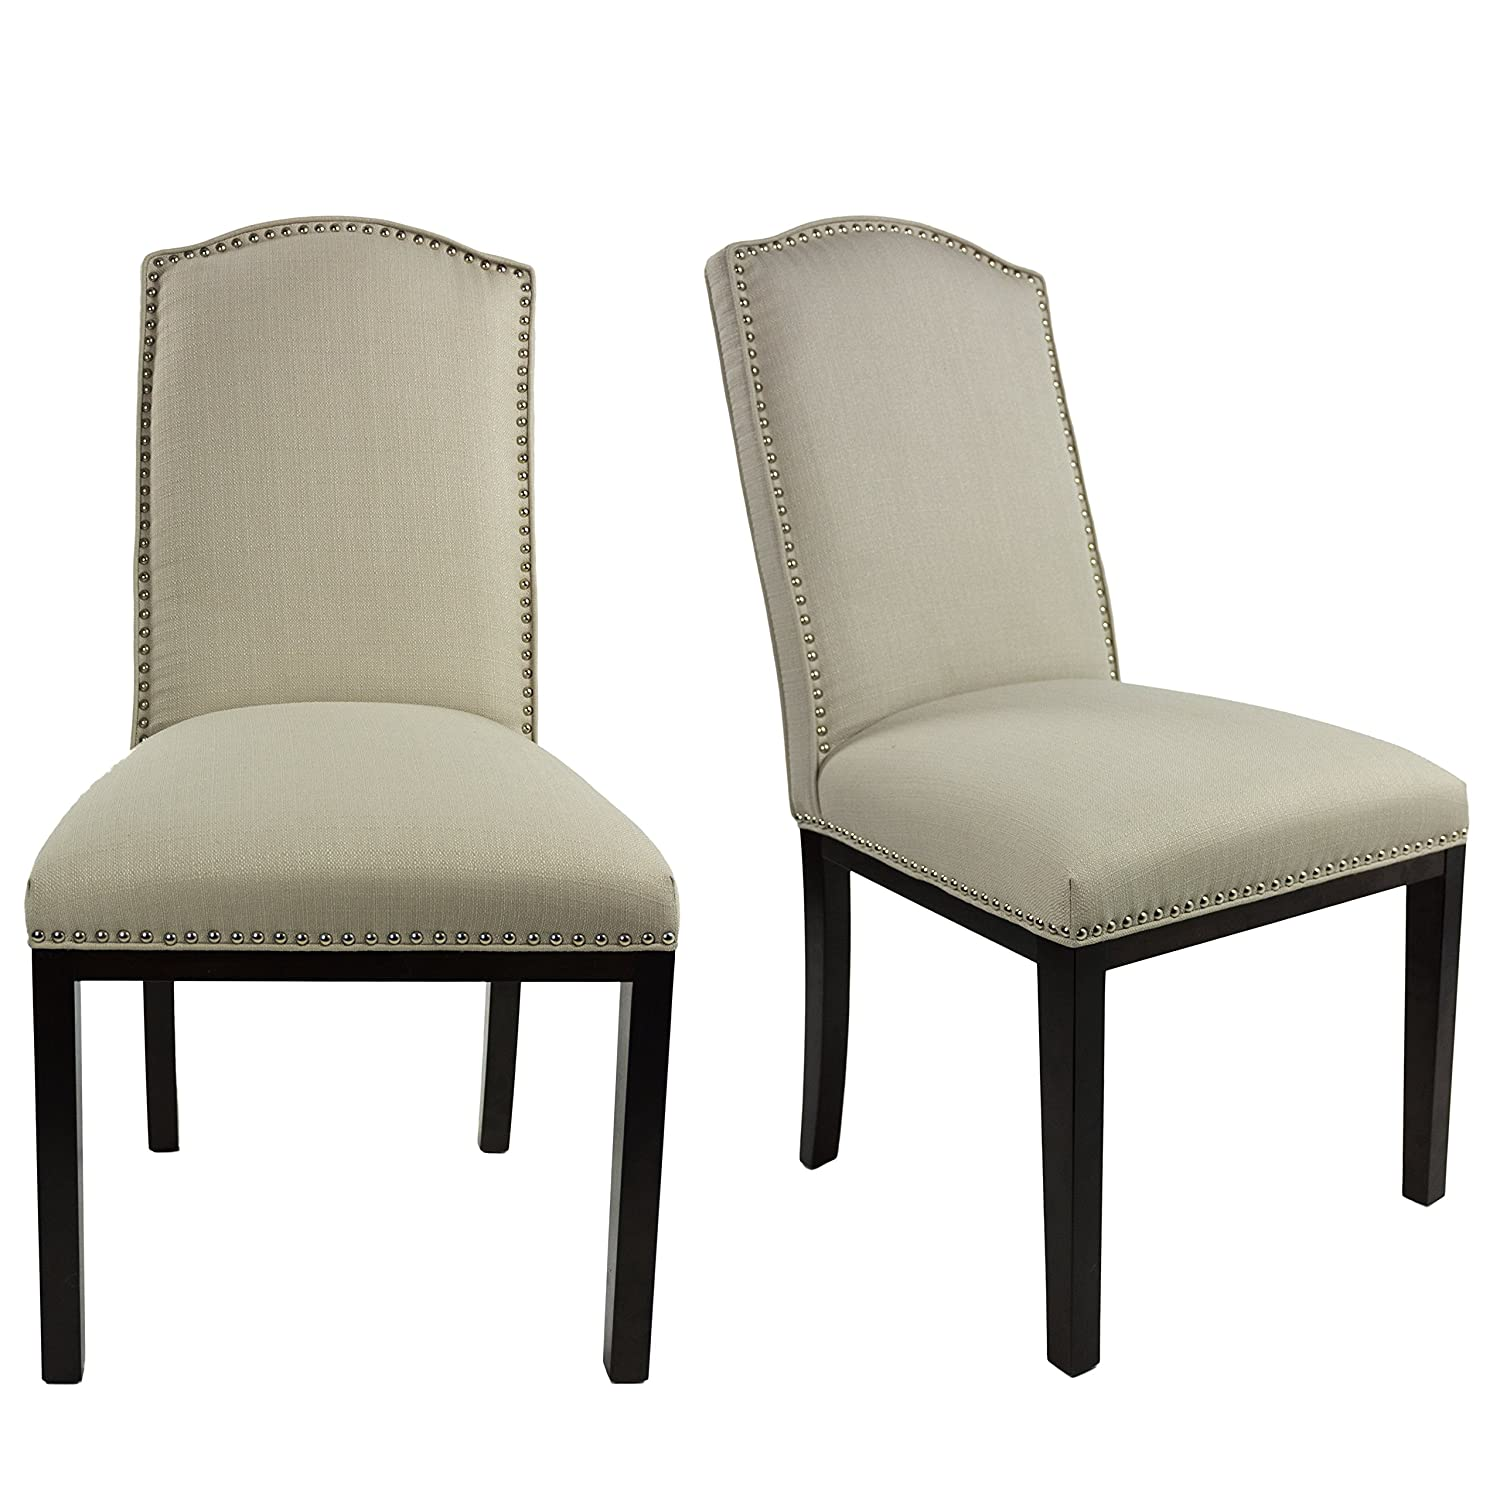 Sole Designs Allison Collection Modern Upholstered Dining Room Chair With Cambel Back Design and Nailhead Trim, Set of 2, Crème